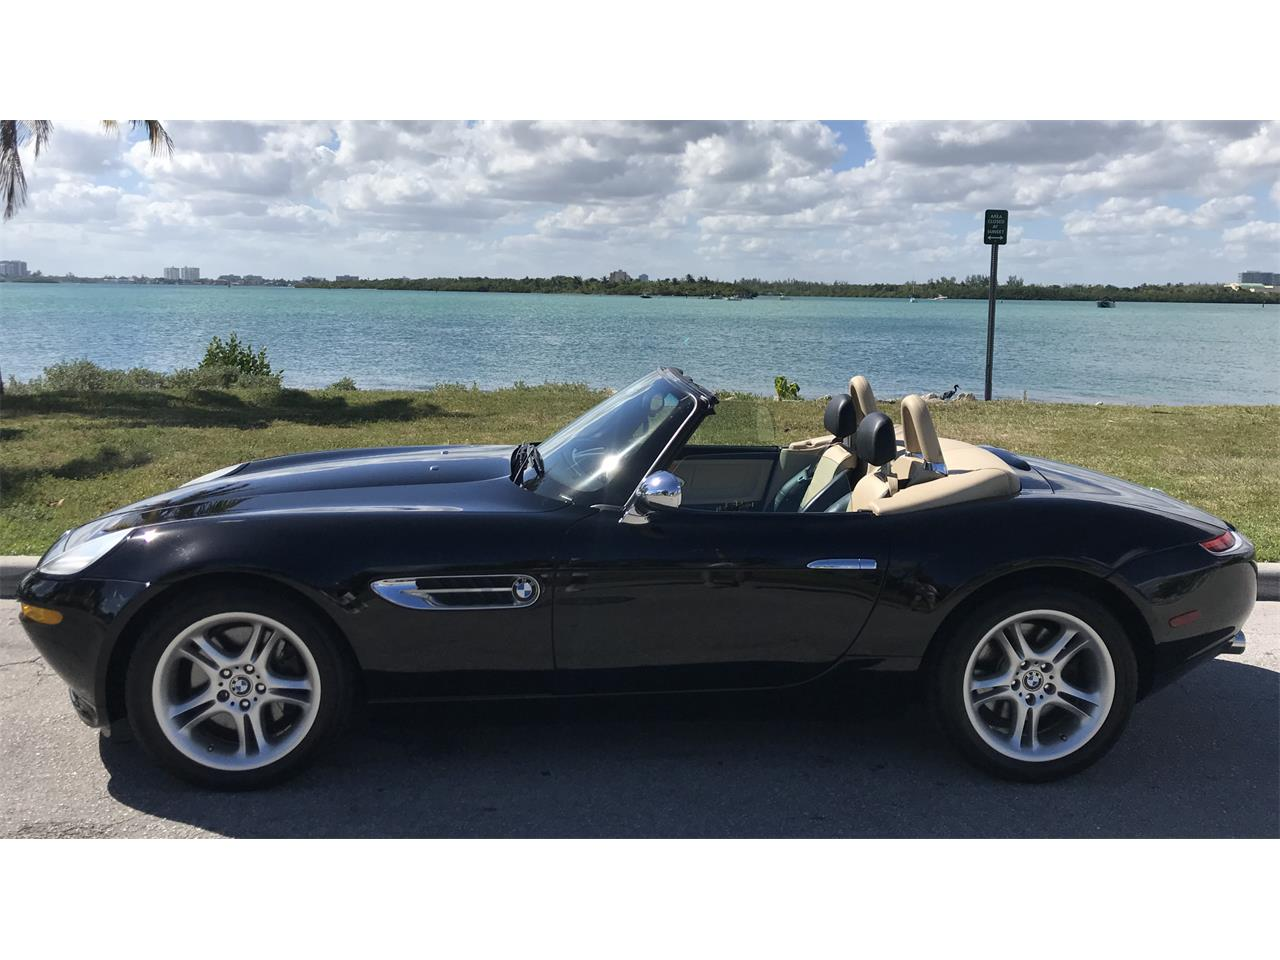 Large Picture of 2001 Z8 - $174,750.00 Offered by a Private Seller - OV1C